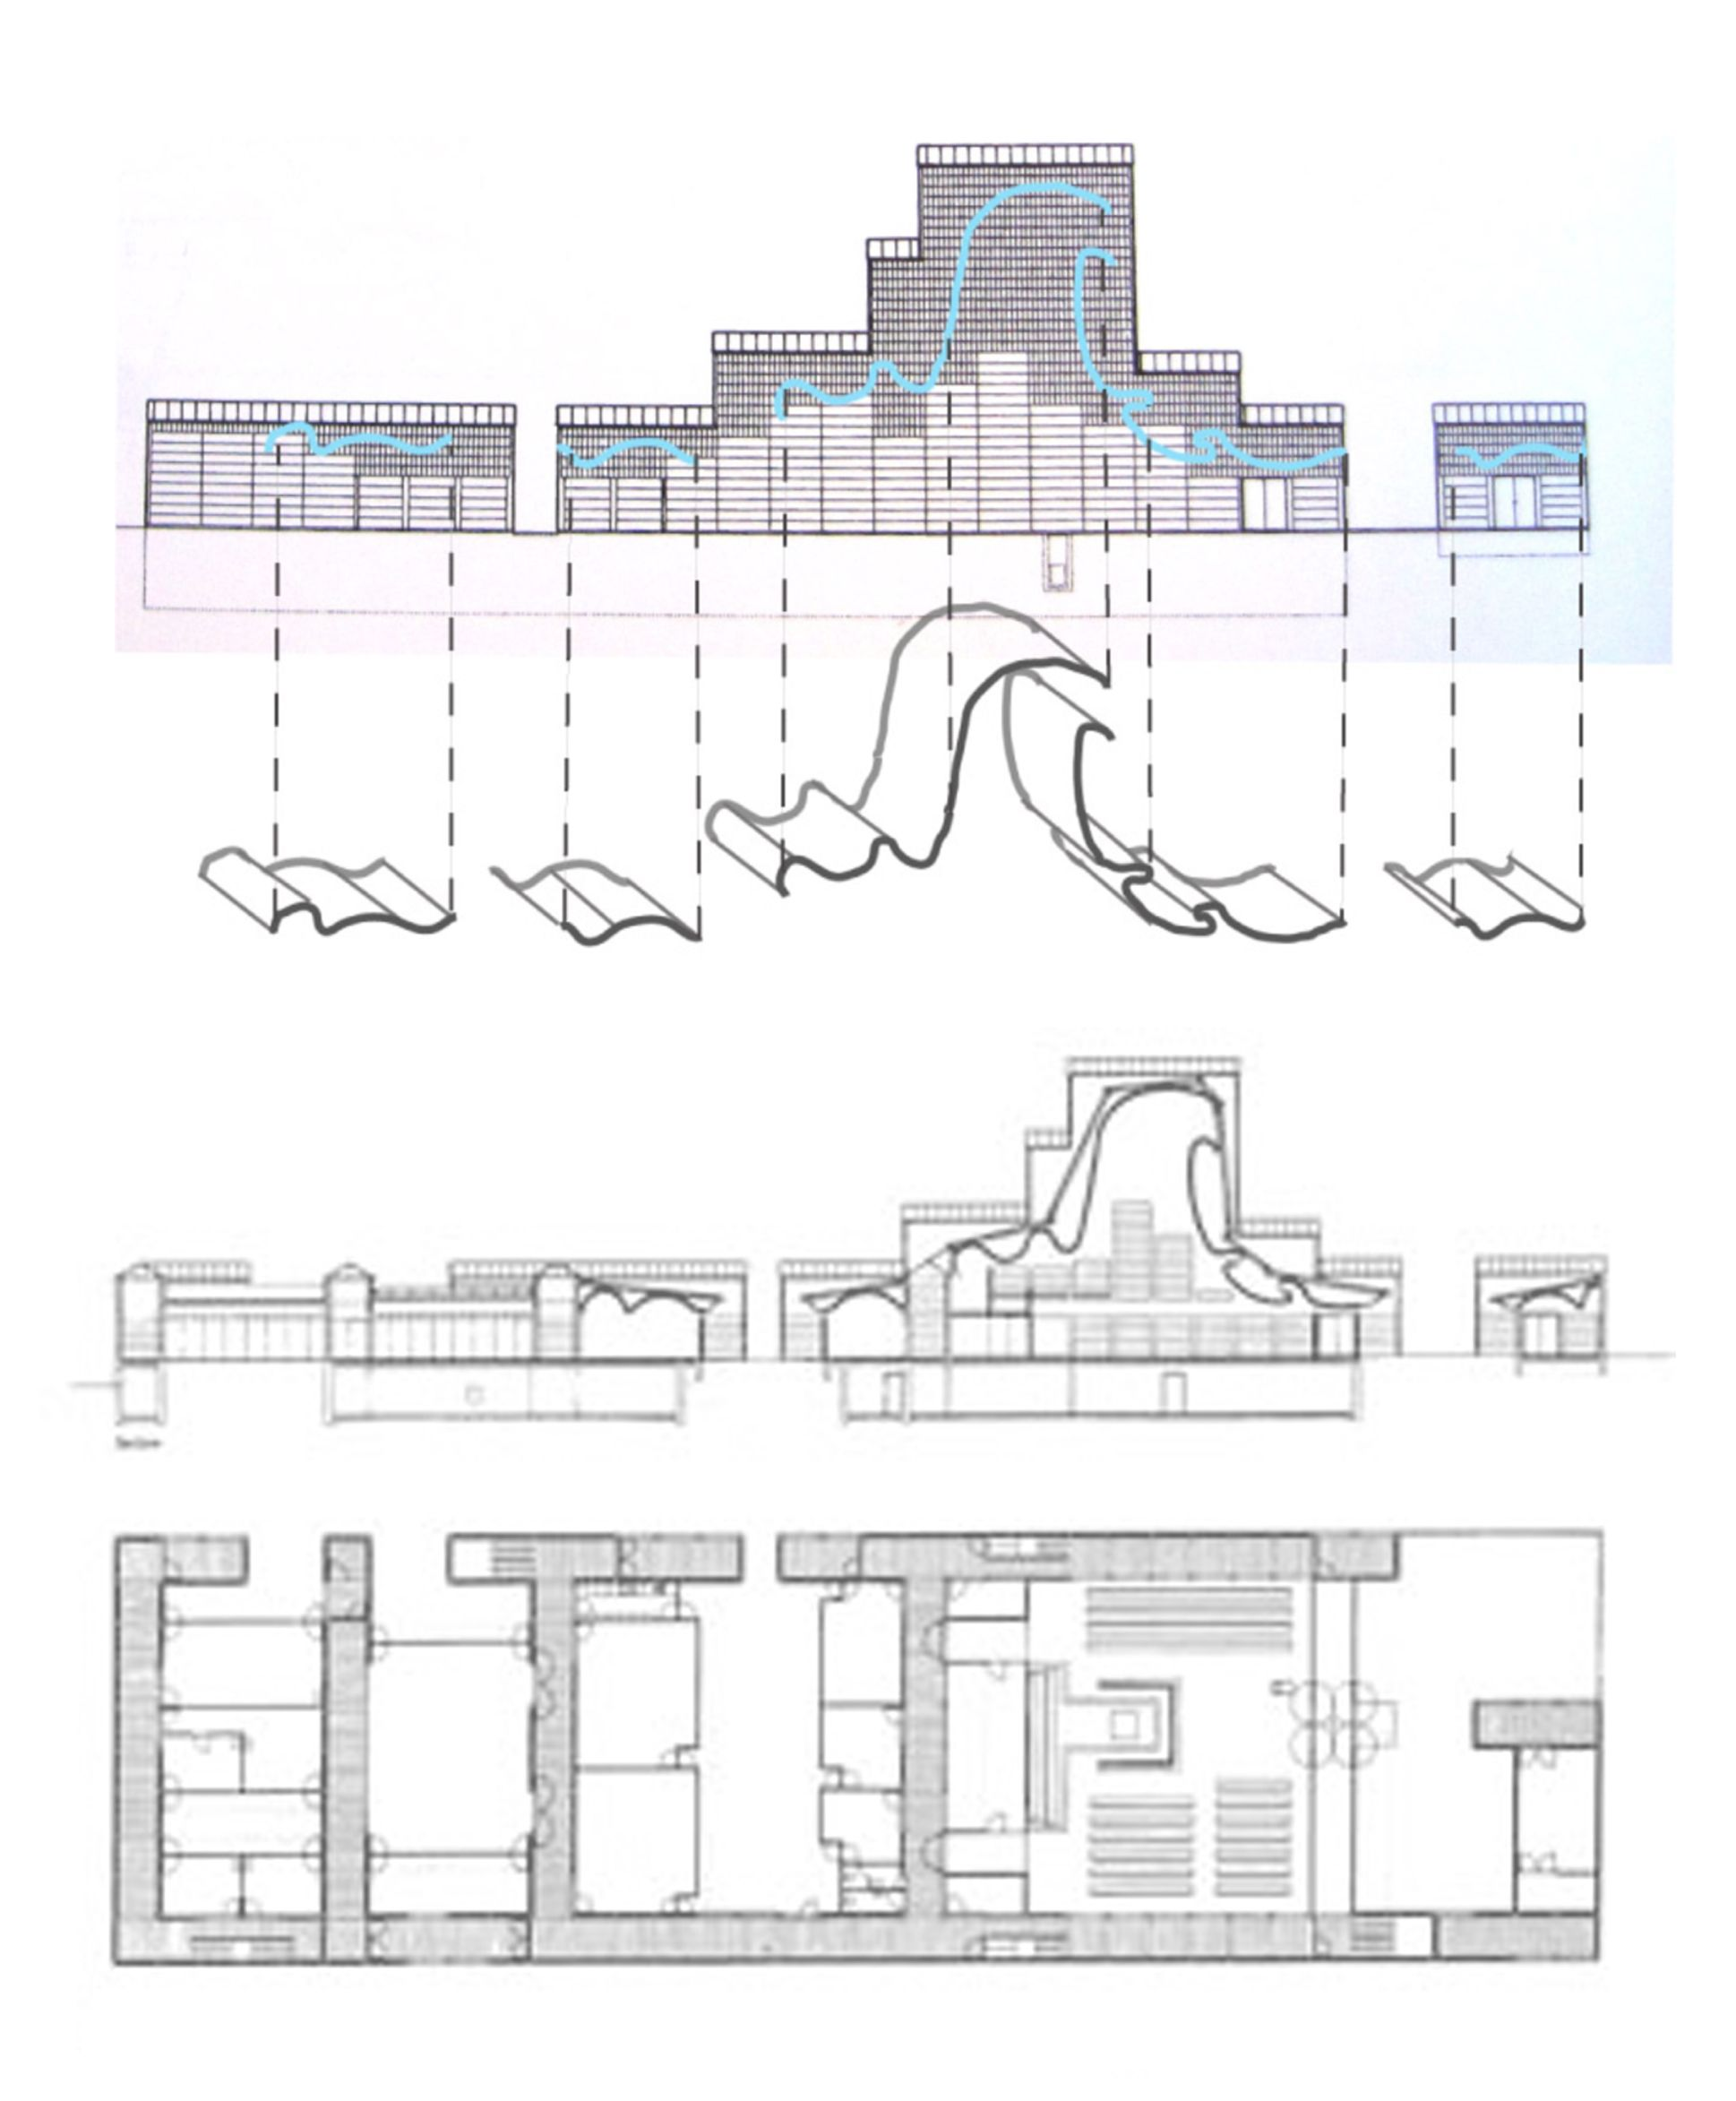 Plan And Sections Of Bagsvaerd Church